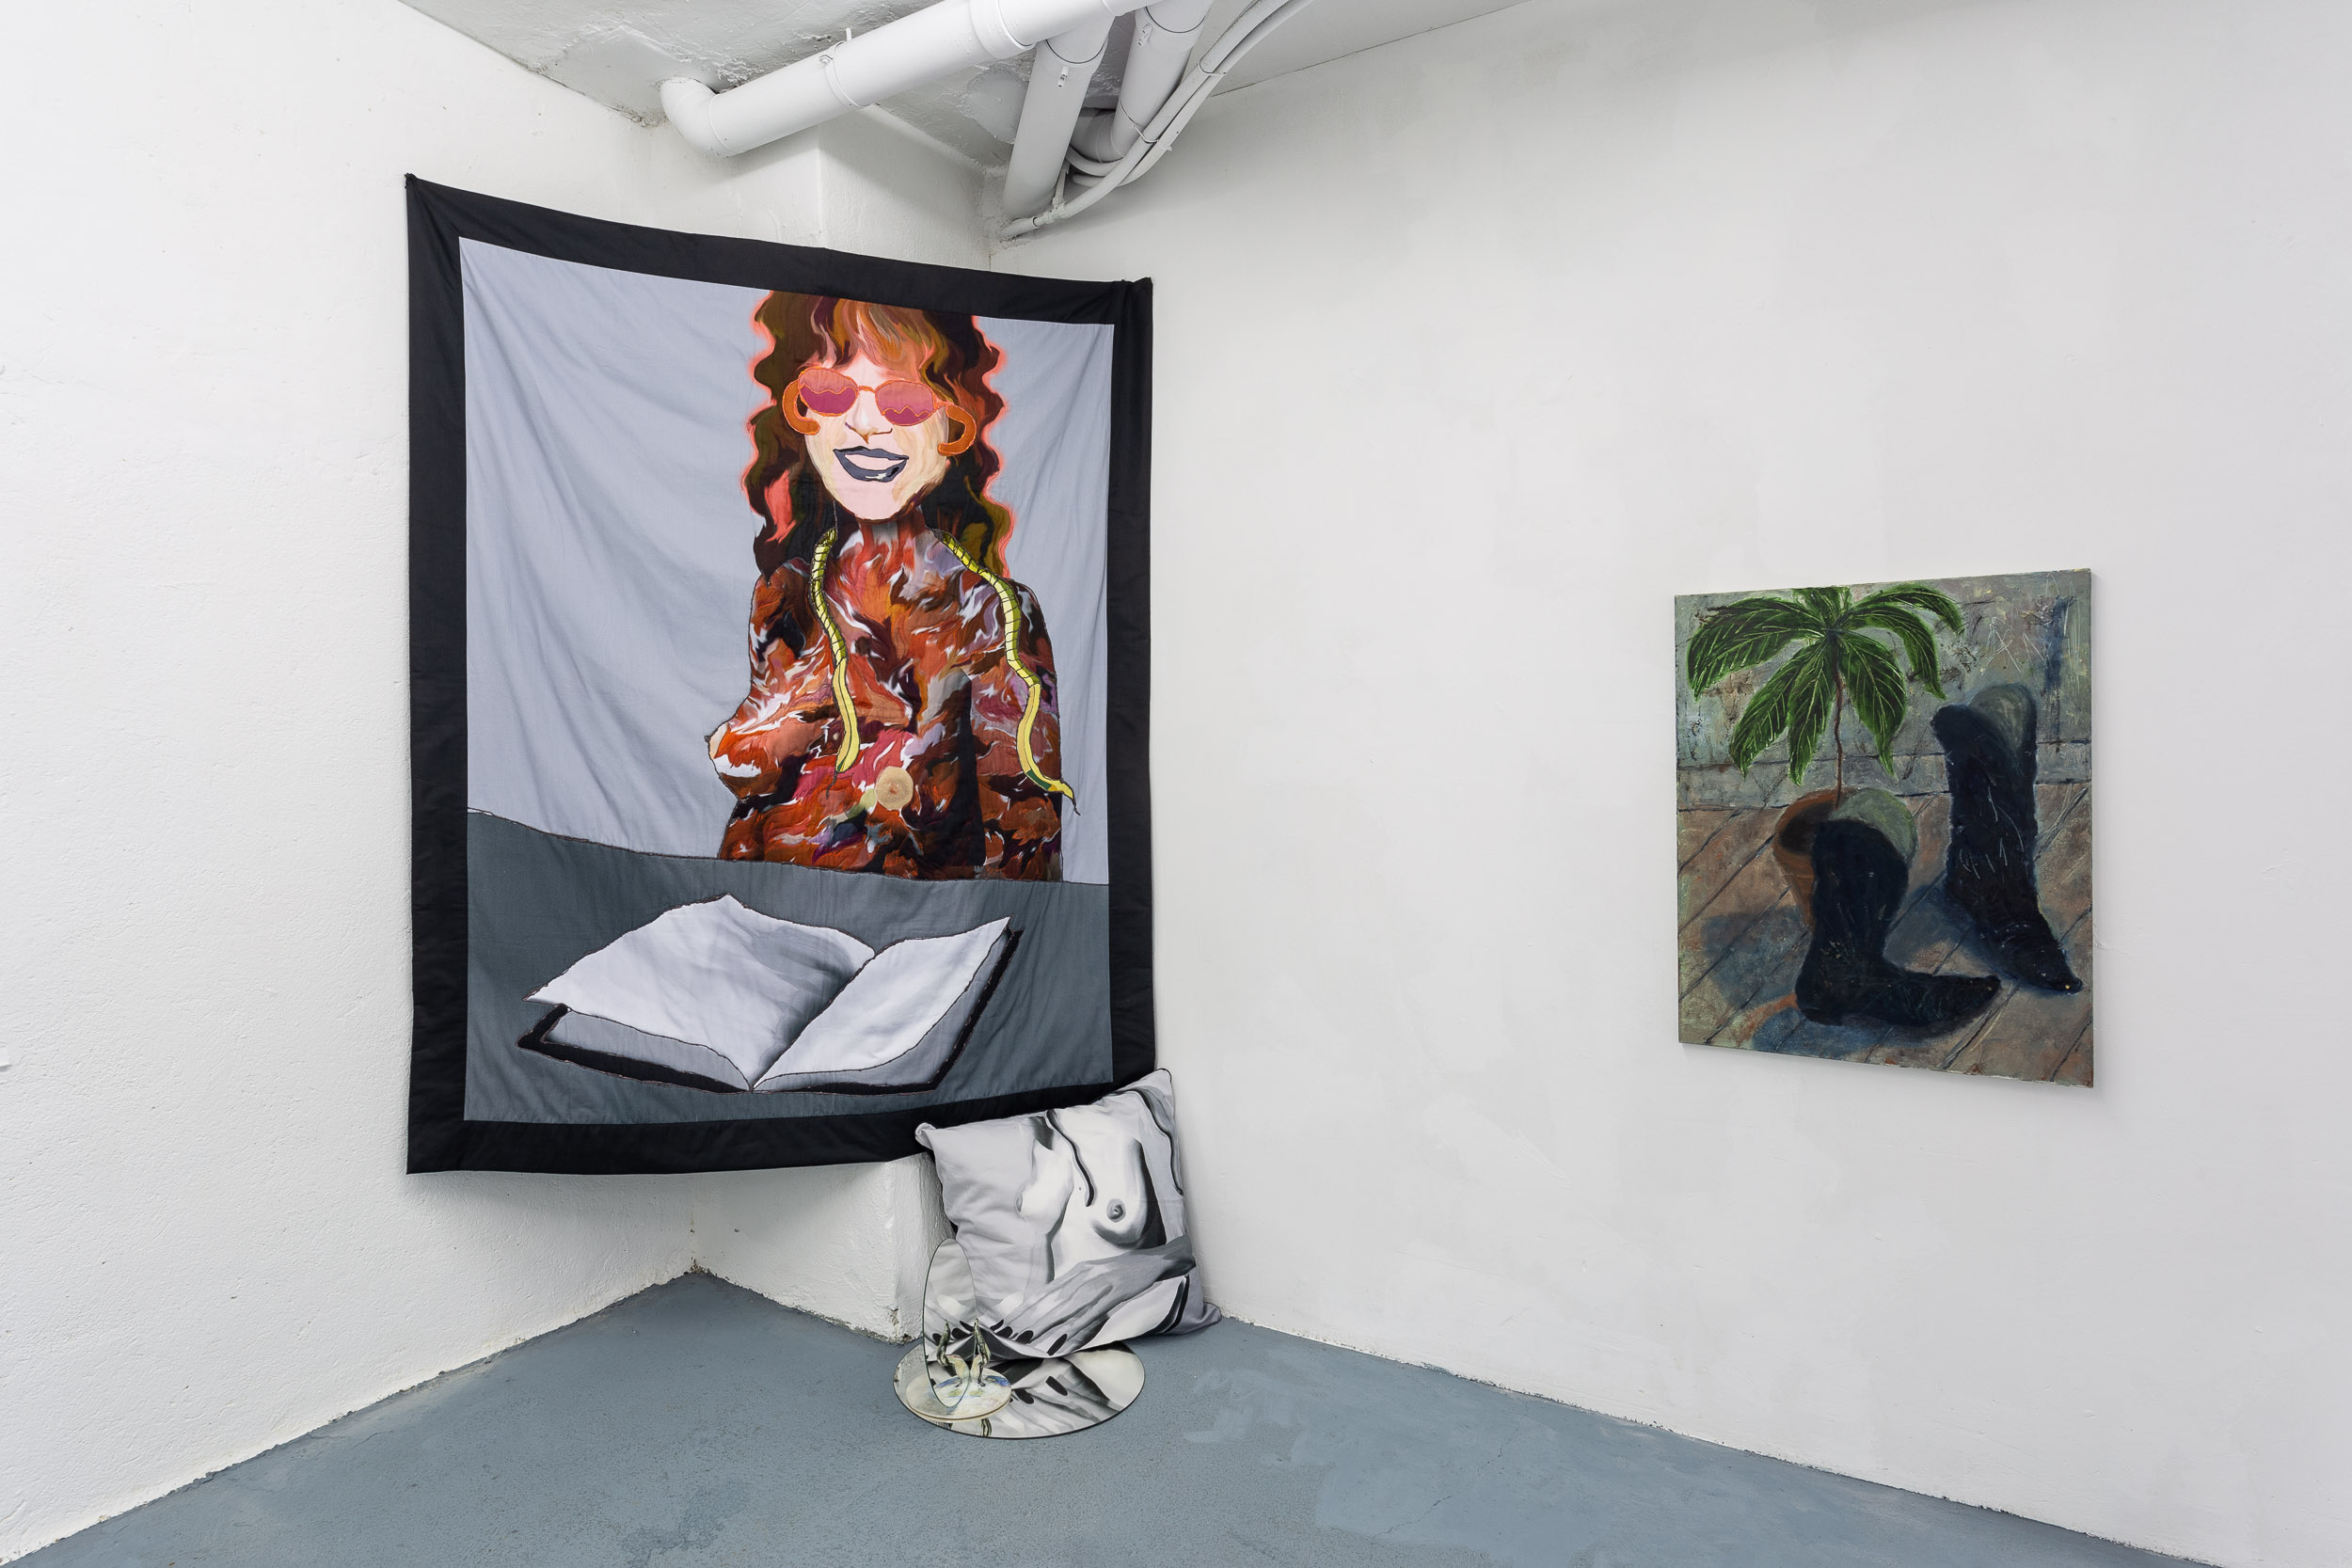 Left: Xénia Lucie Laffely,  Chase the pattern (Quilt for Judy Chicago),  2018, embroidered quilt, 180 x 160 cm I  No milk for u bitch , printed cotton, 60 x 60 cm Right: Dieter Hall,  My avocado, my boots,  1989, Oil on canvas, 80 x 60 cm,  Photo: Kilian Bannwart